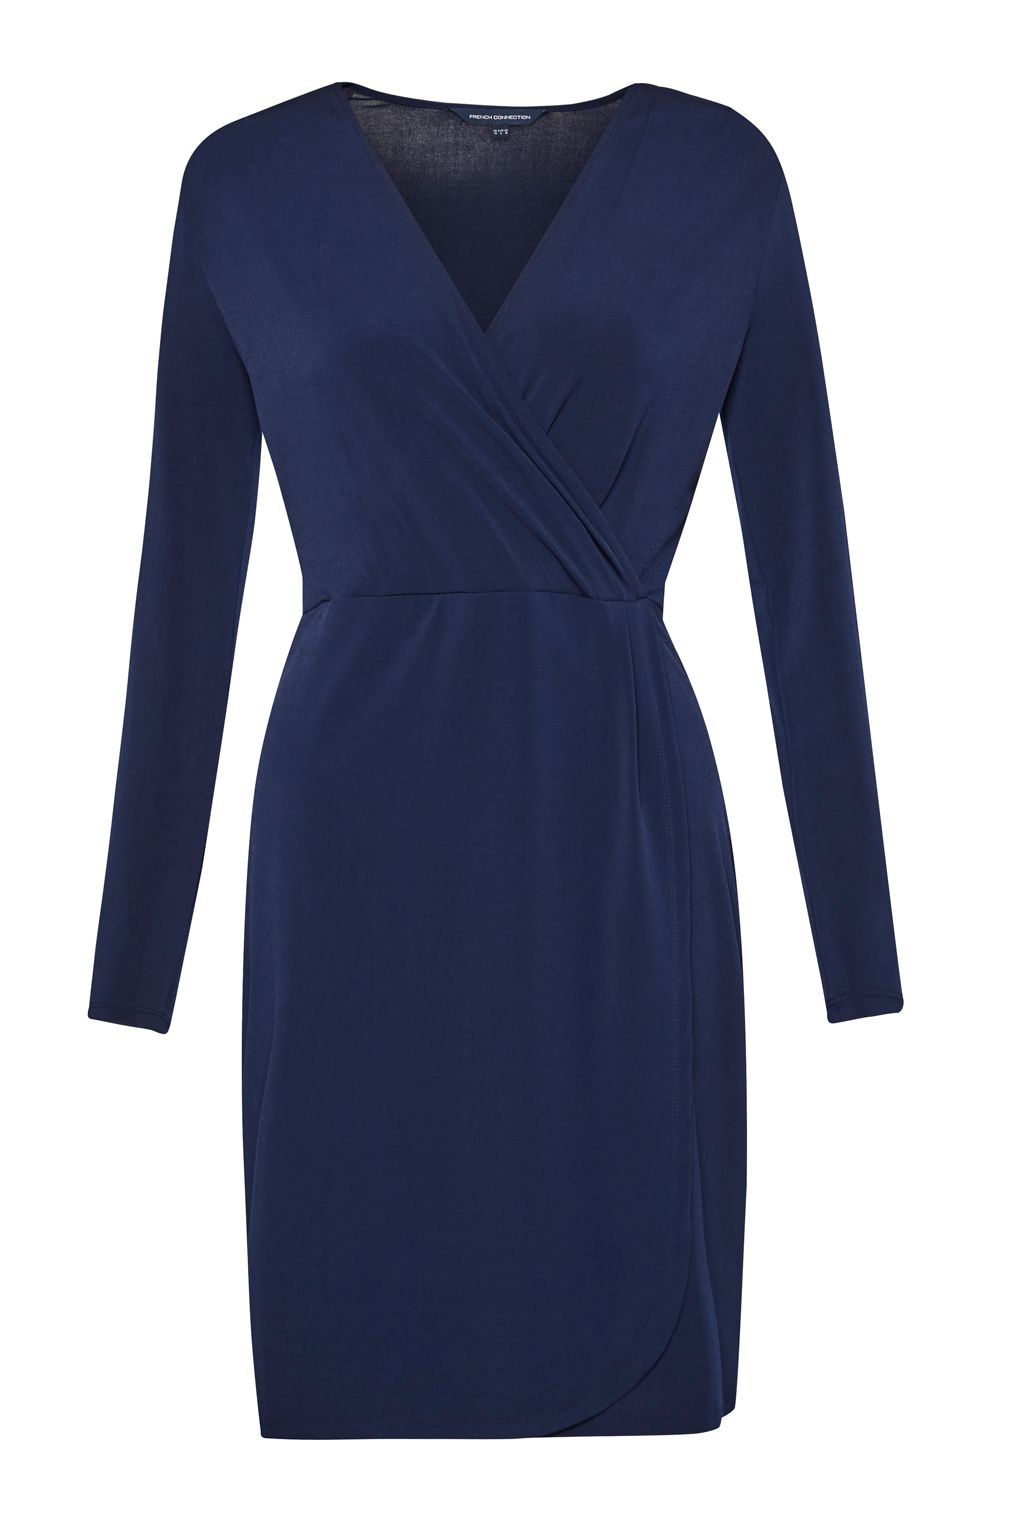 French Connection Slinky Wrap Dress, Blue